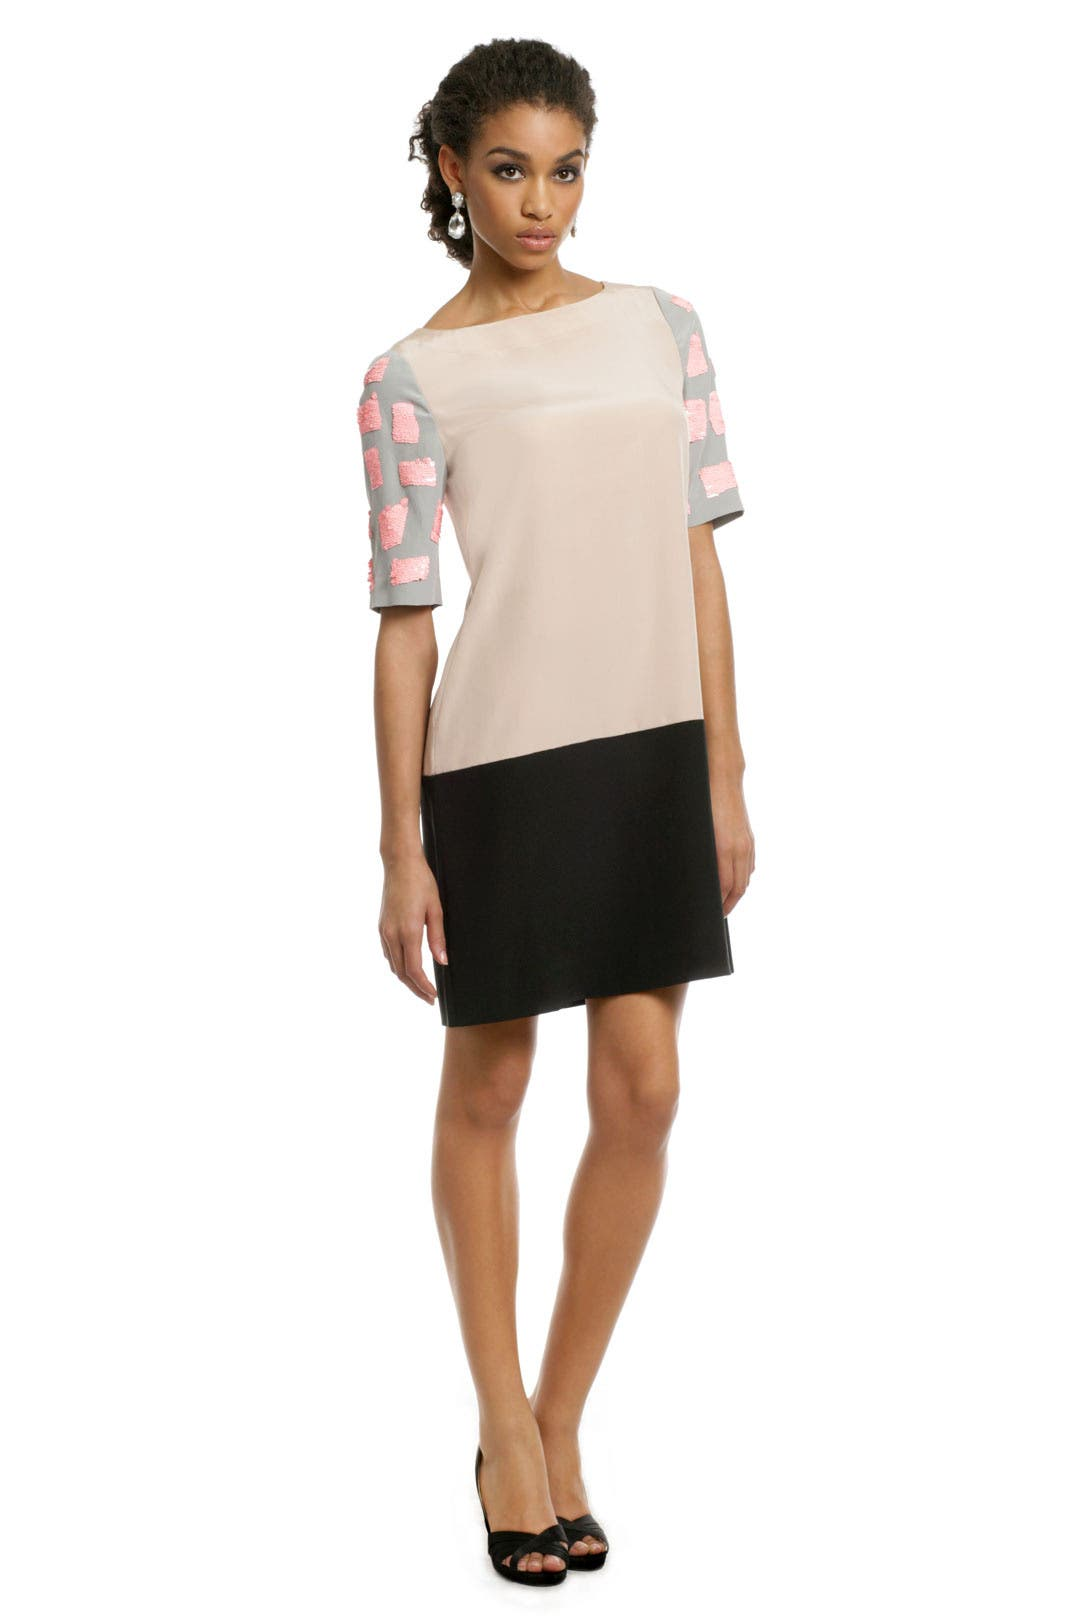 Mosaic Nude Colorblock Shift by Tibi